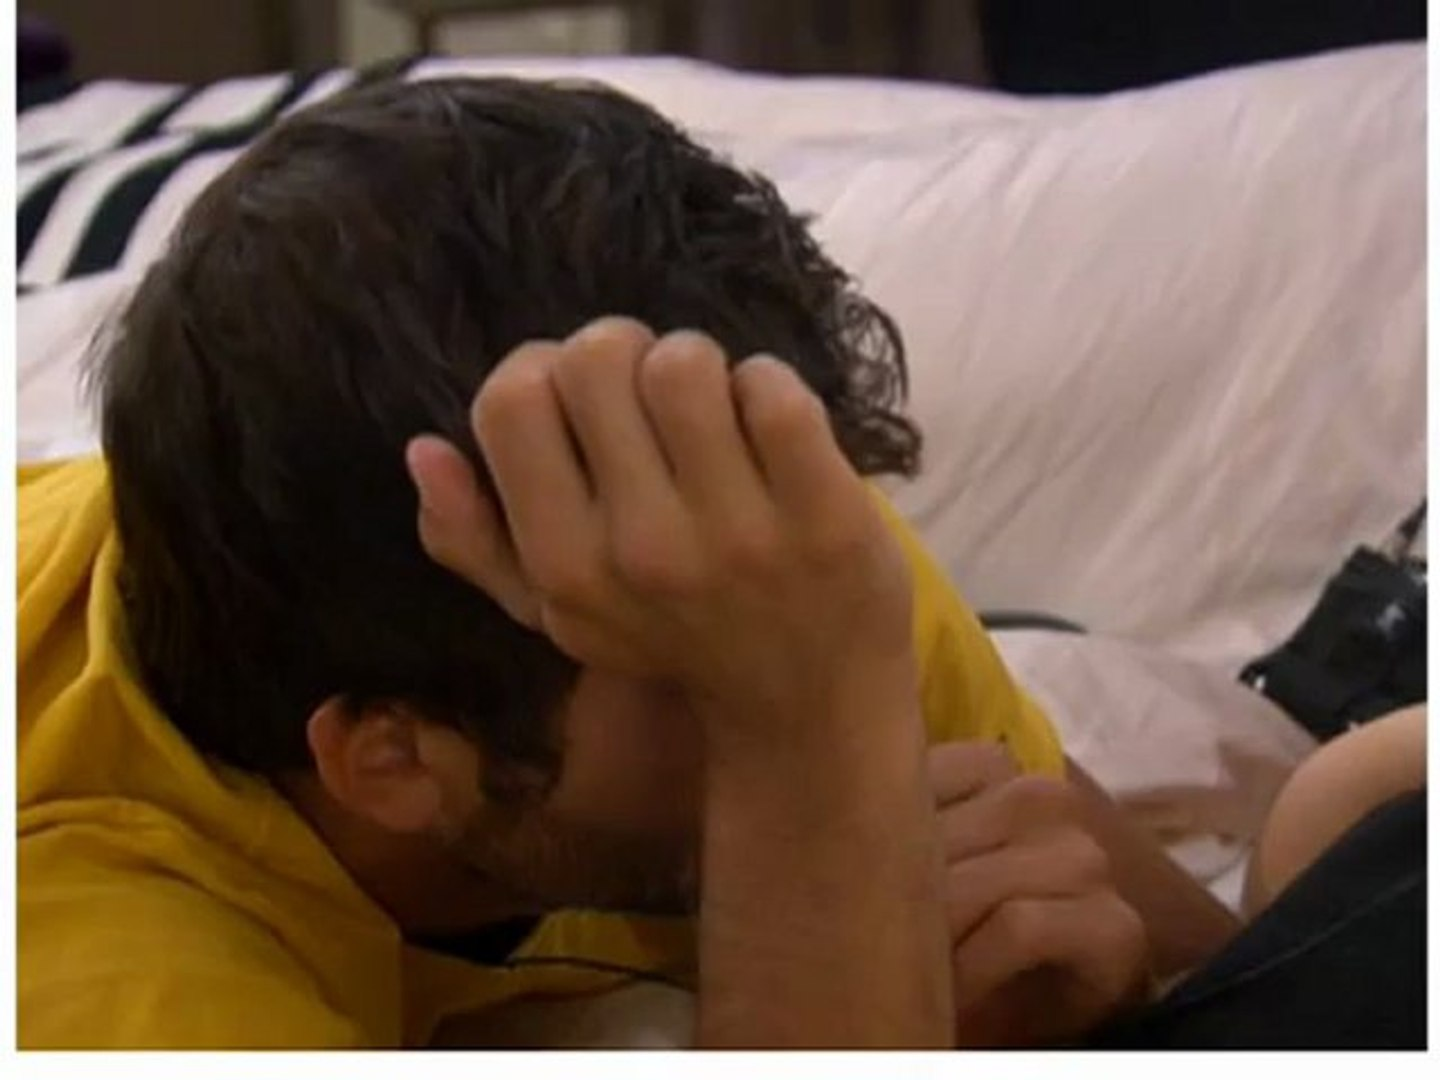 OMG We're in such a huge showmance.